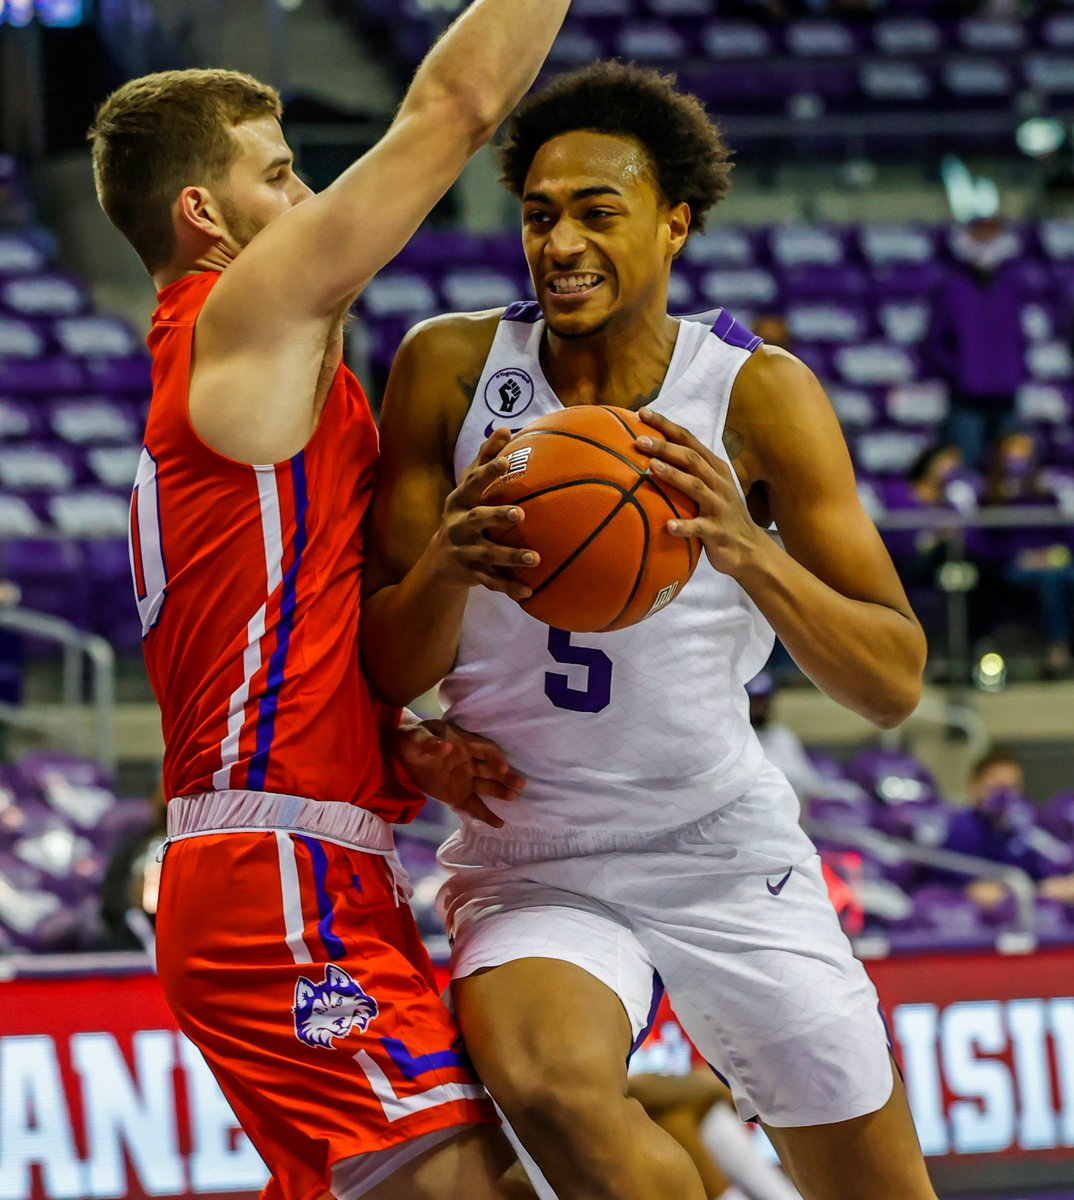 TCU 48 - HBU 28 | 11:50 2H  Chuck O'Bannon with eight points and eight boards so far in his TCU debut.  #GoFrogs 😈 https://t.co/SwewmgpnR7